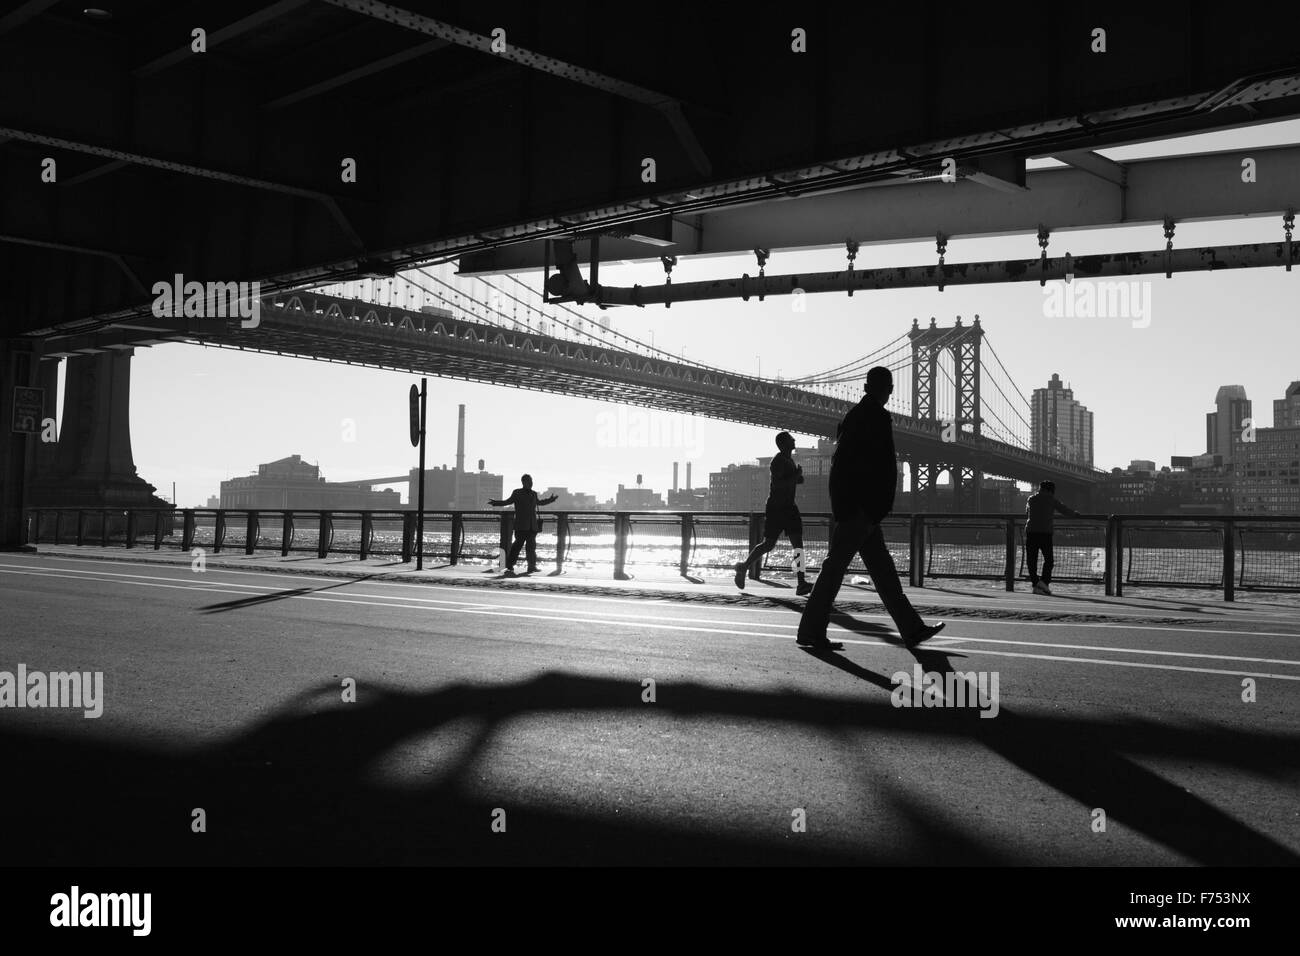 Two Chinatown women exercise, a man runs, another walks while watching the others along the East River overpass - Stock Image